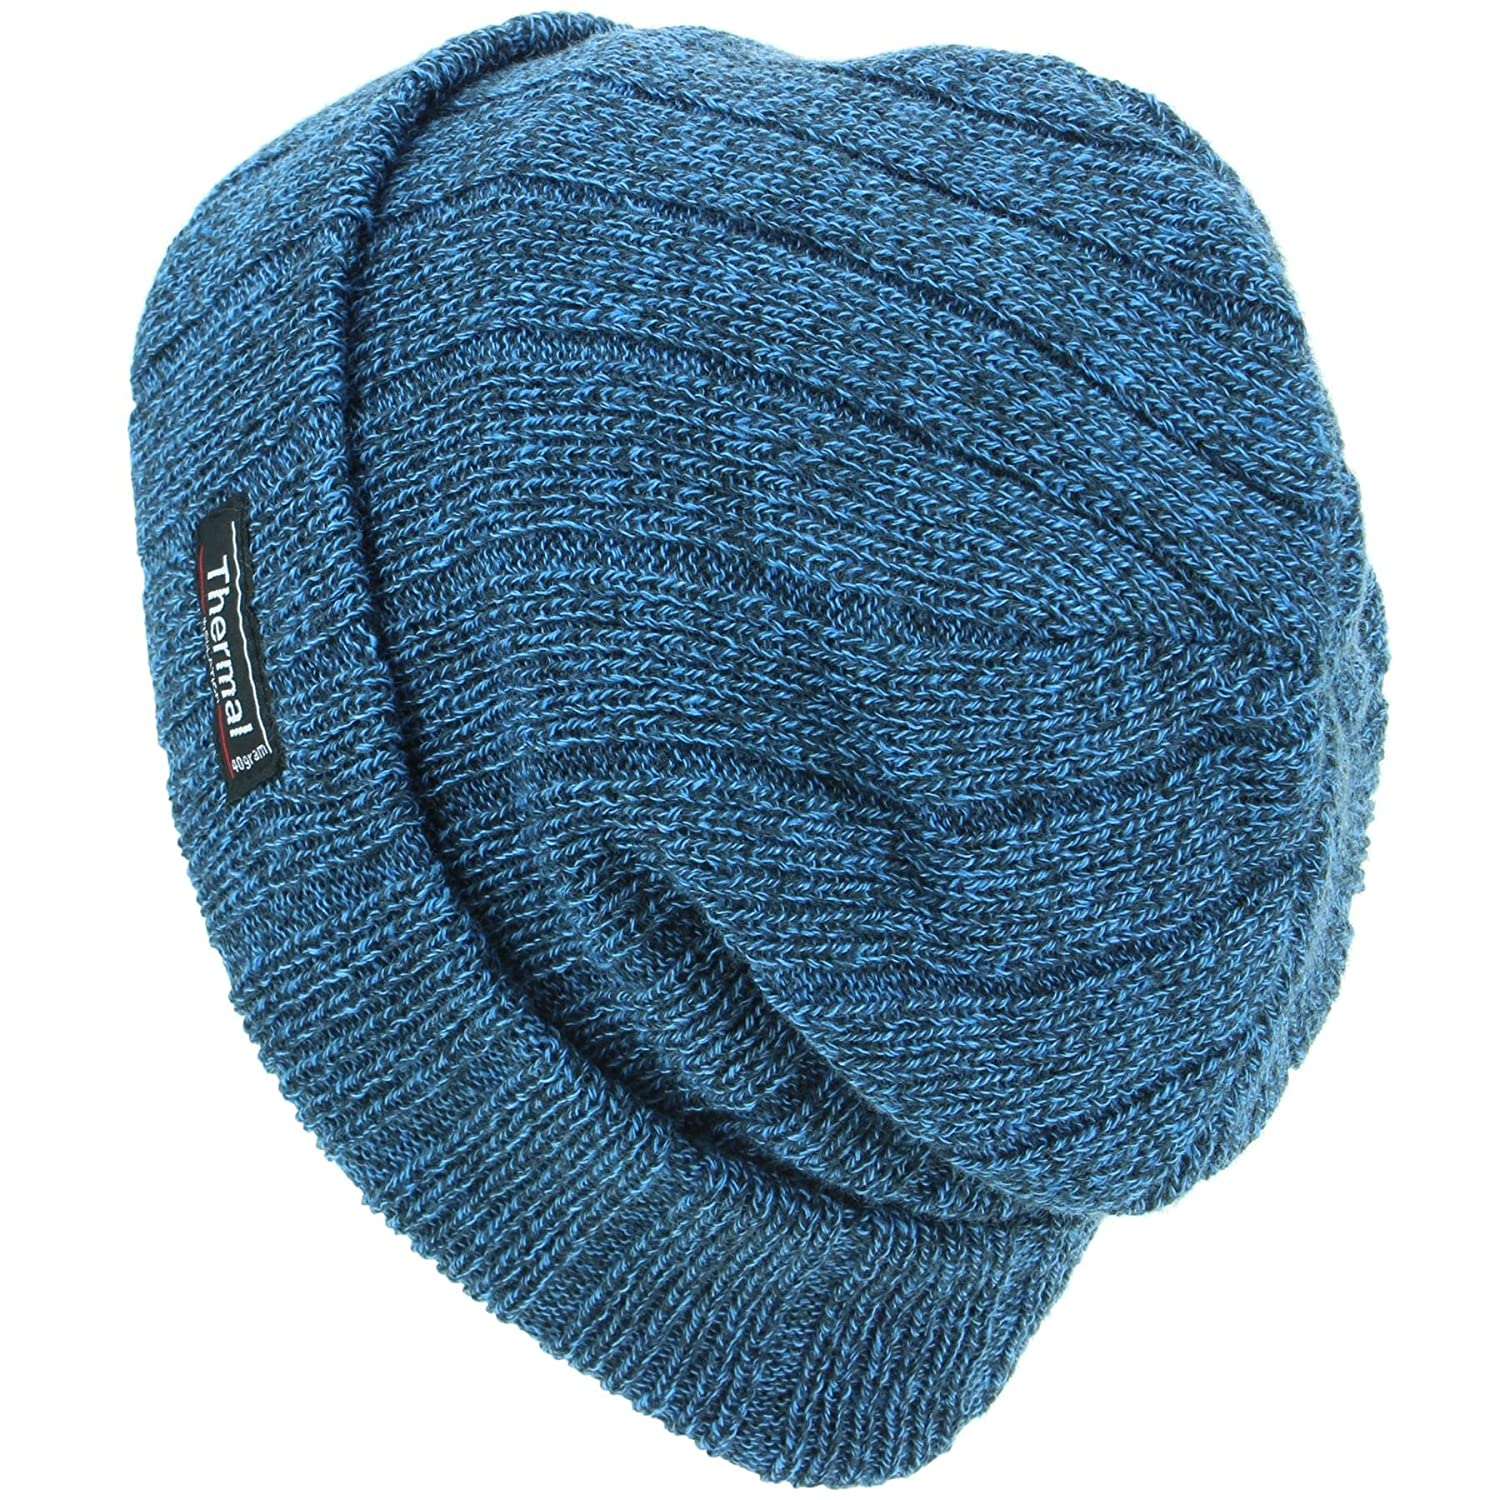 Thinsulate Fine Knit Marl Beanie Hat with Thermal Lining - Blue   Amazon.co.uk  Clothing c3aeedf2e86f